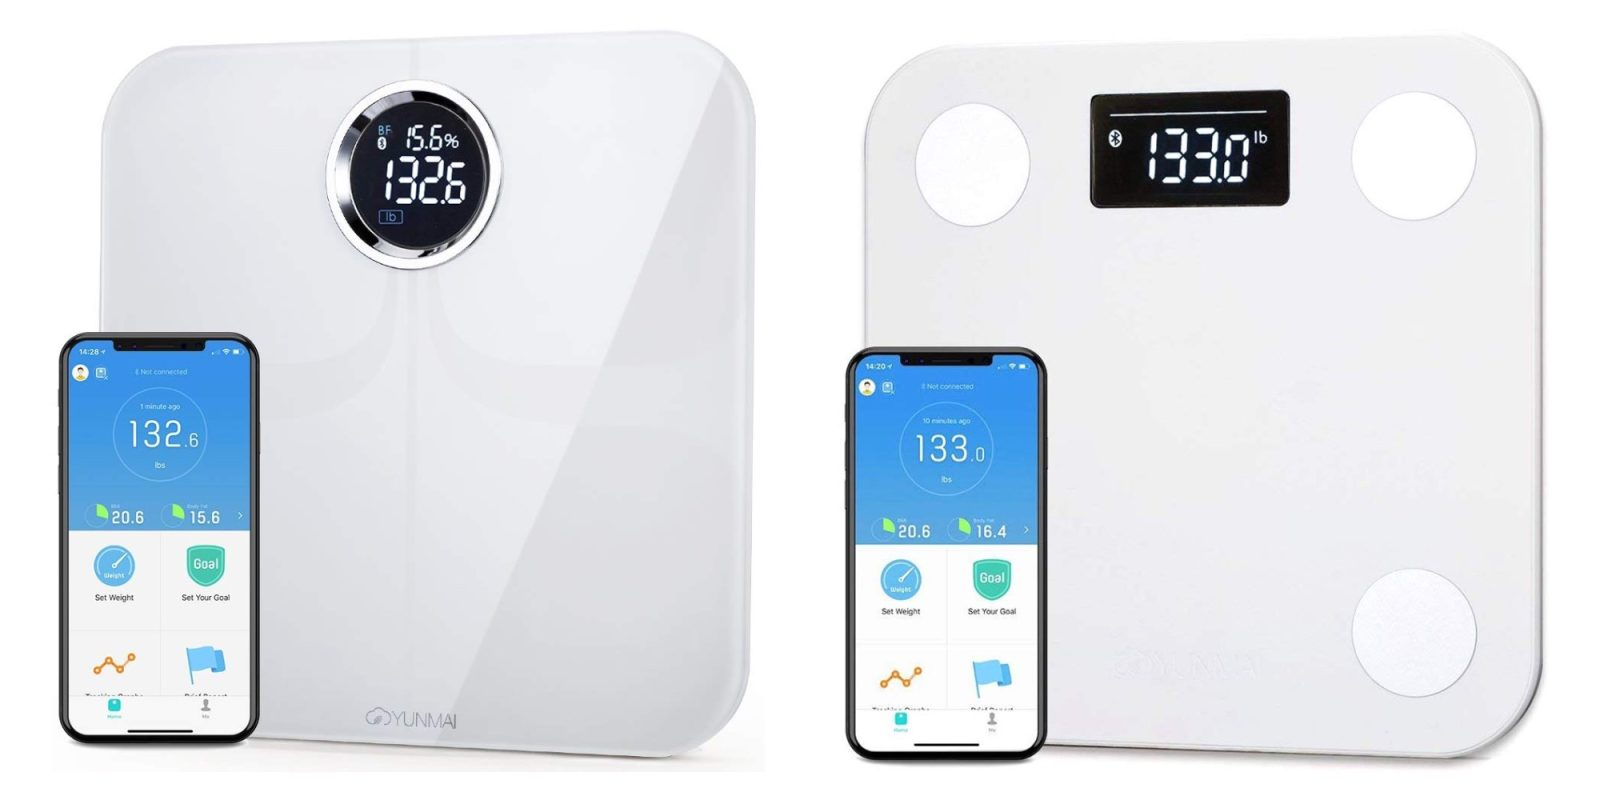 Today's Gold Box takes up to 42% off Apple Health-enabled smart scales from $29